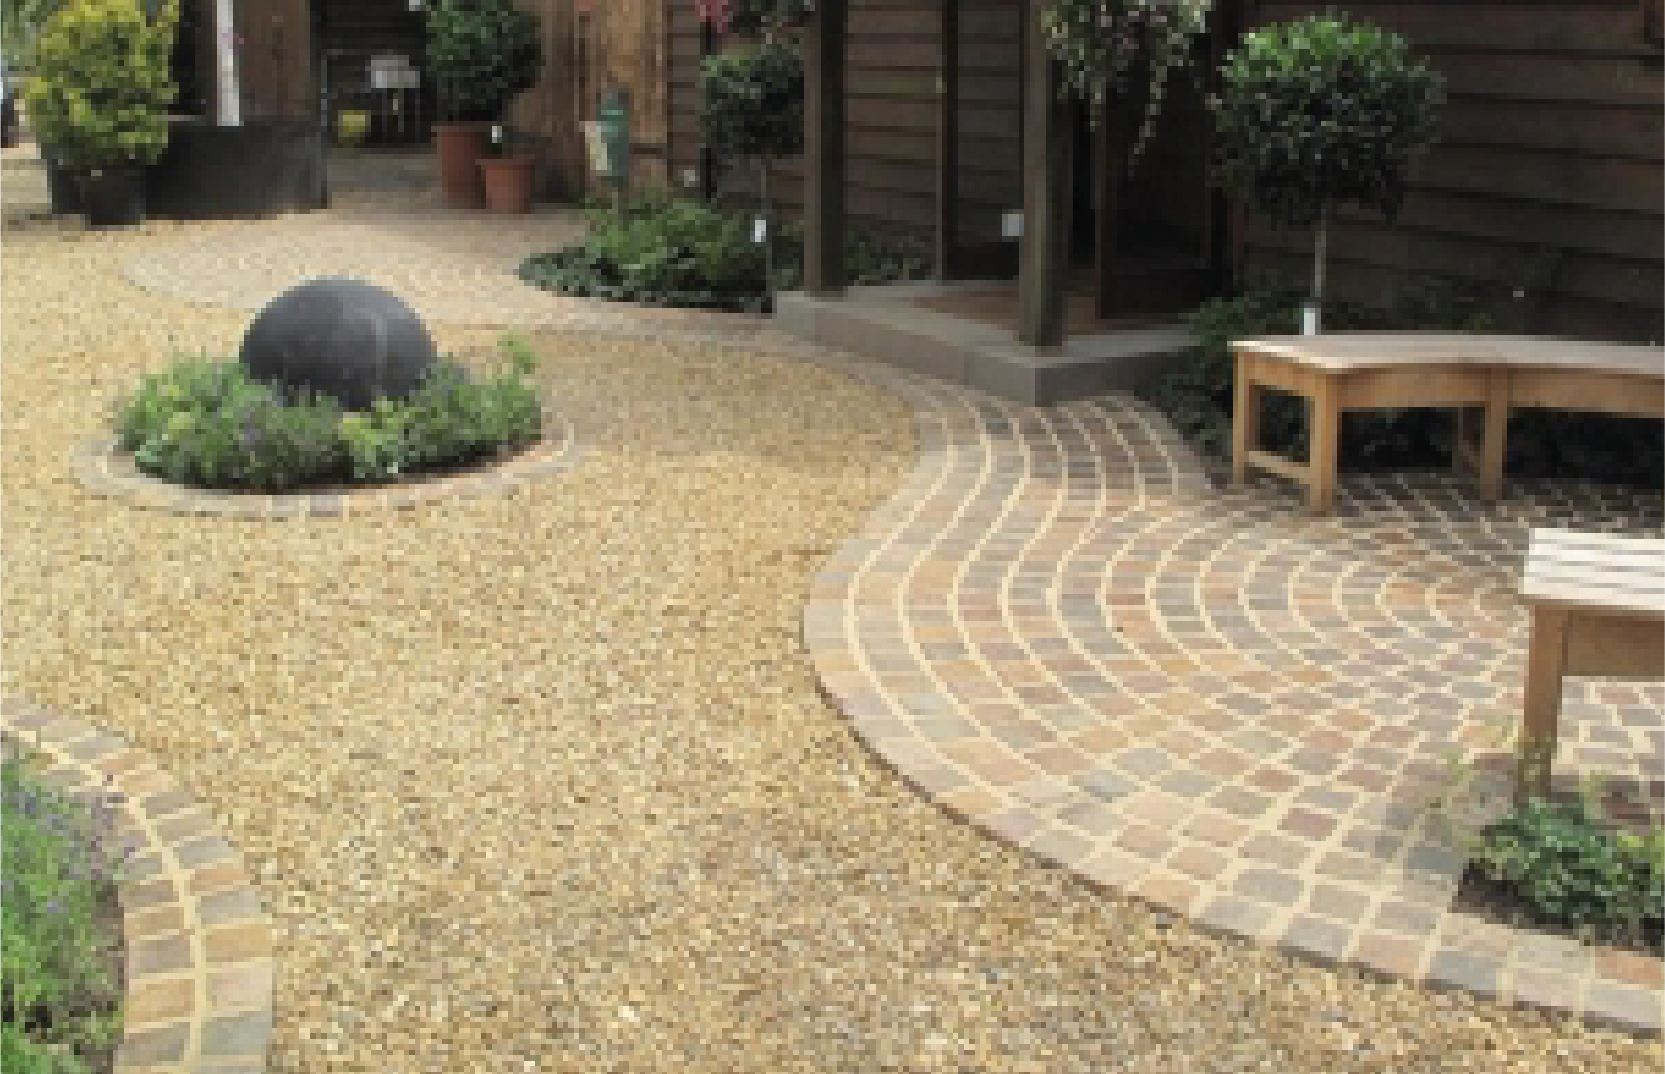 Revolutionise your garden with Gravel. Theis cost-effective feature is effective in all weather conditions and allows for the perfect setting of medditearean-style plants such as Lavender, Santolina and Rosemary.